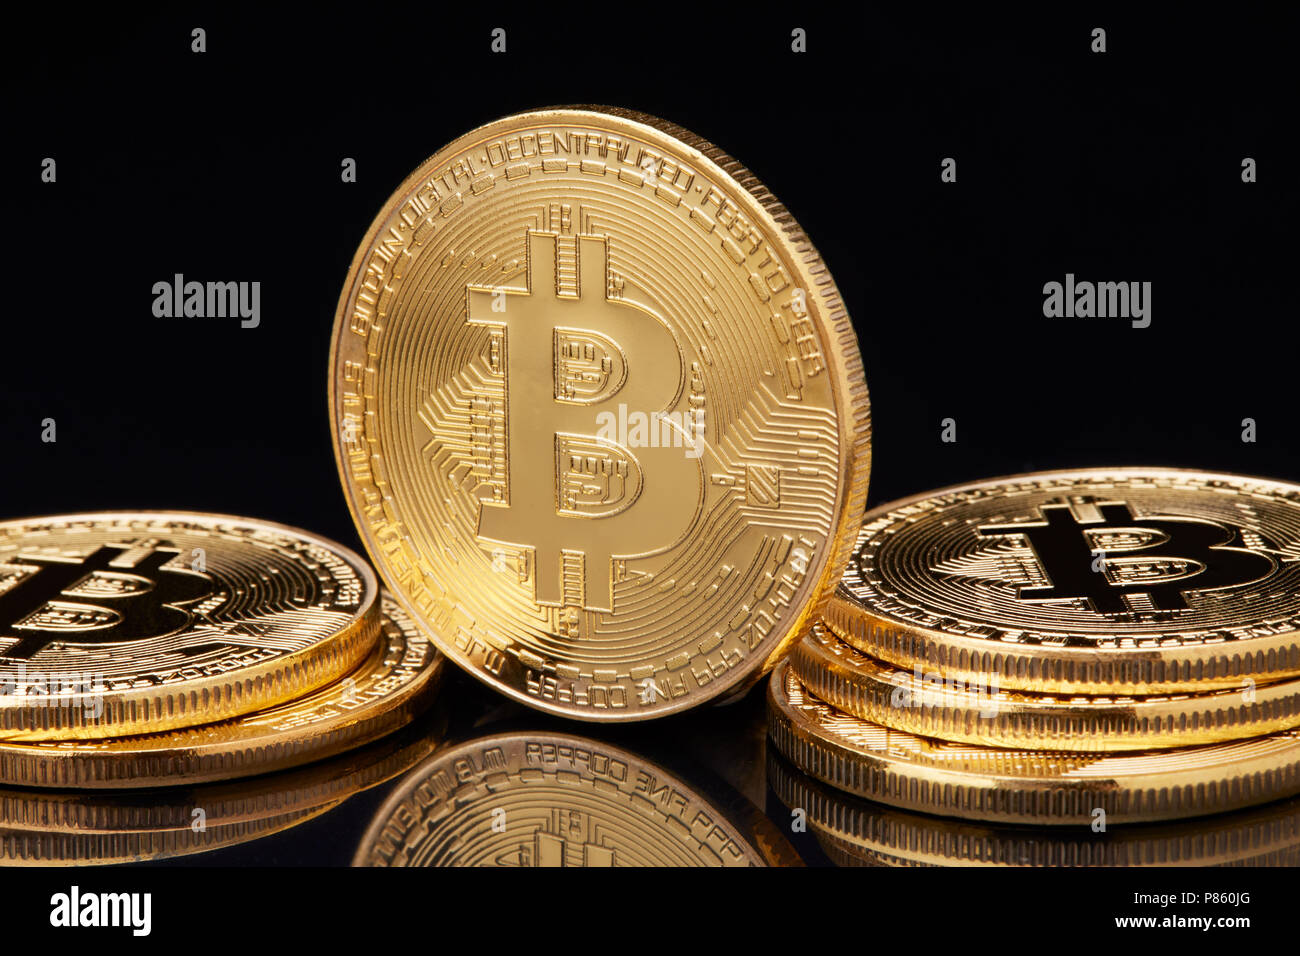 Bitcoin. Crypto currency Gold Bitcoin, BTC, Bit Coin. Macro shot of Bitcoin coins isolated on black background Blockchain technology, bit-coin mining  - Stock Image